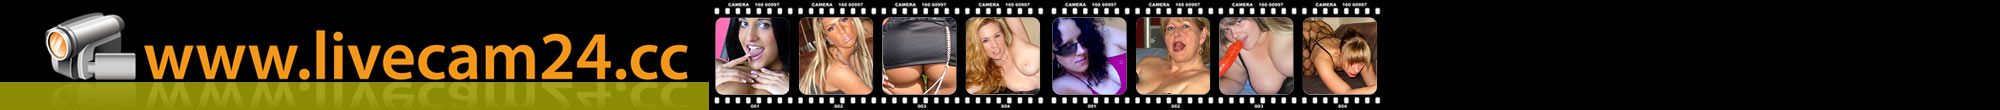 DirrtyClaire, 25 Jahre, BH: 75 A - gratis strip -  - Video Web Cams Live Sex Chat von heissen Girls